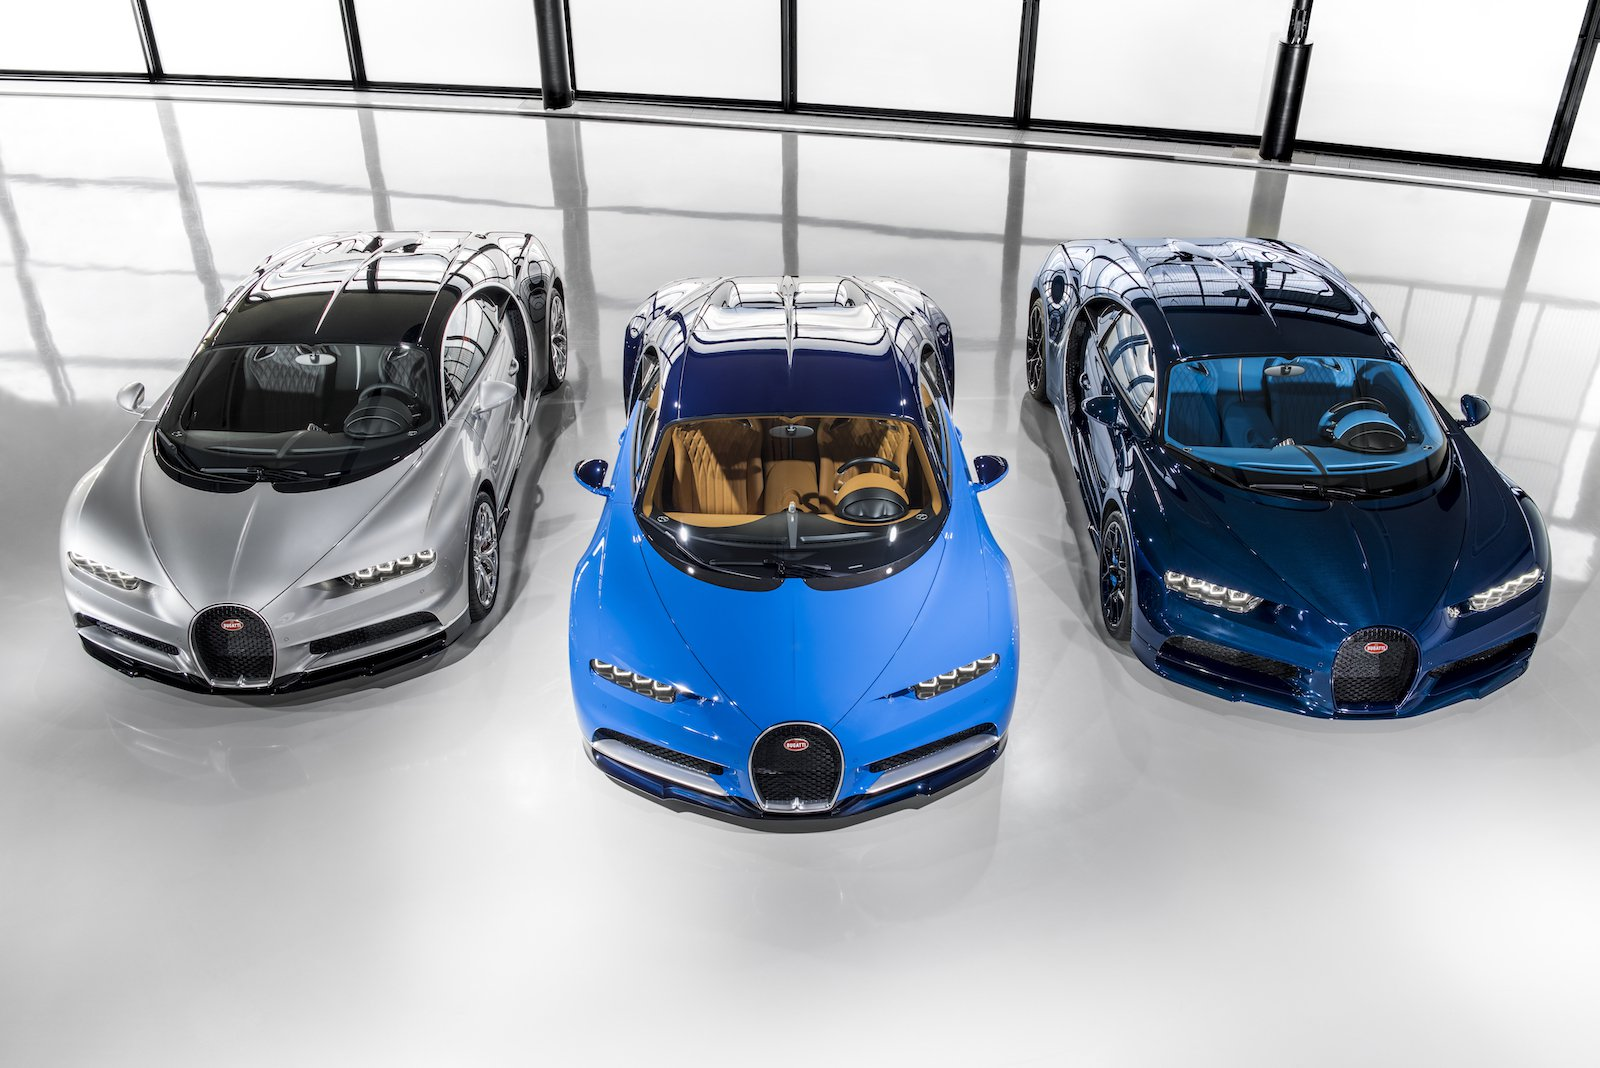 The First Three Bugatti Chirons Find Their Way Home